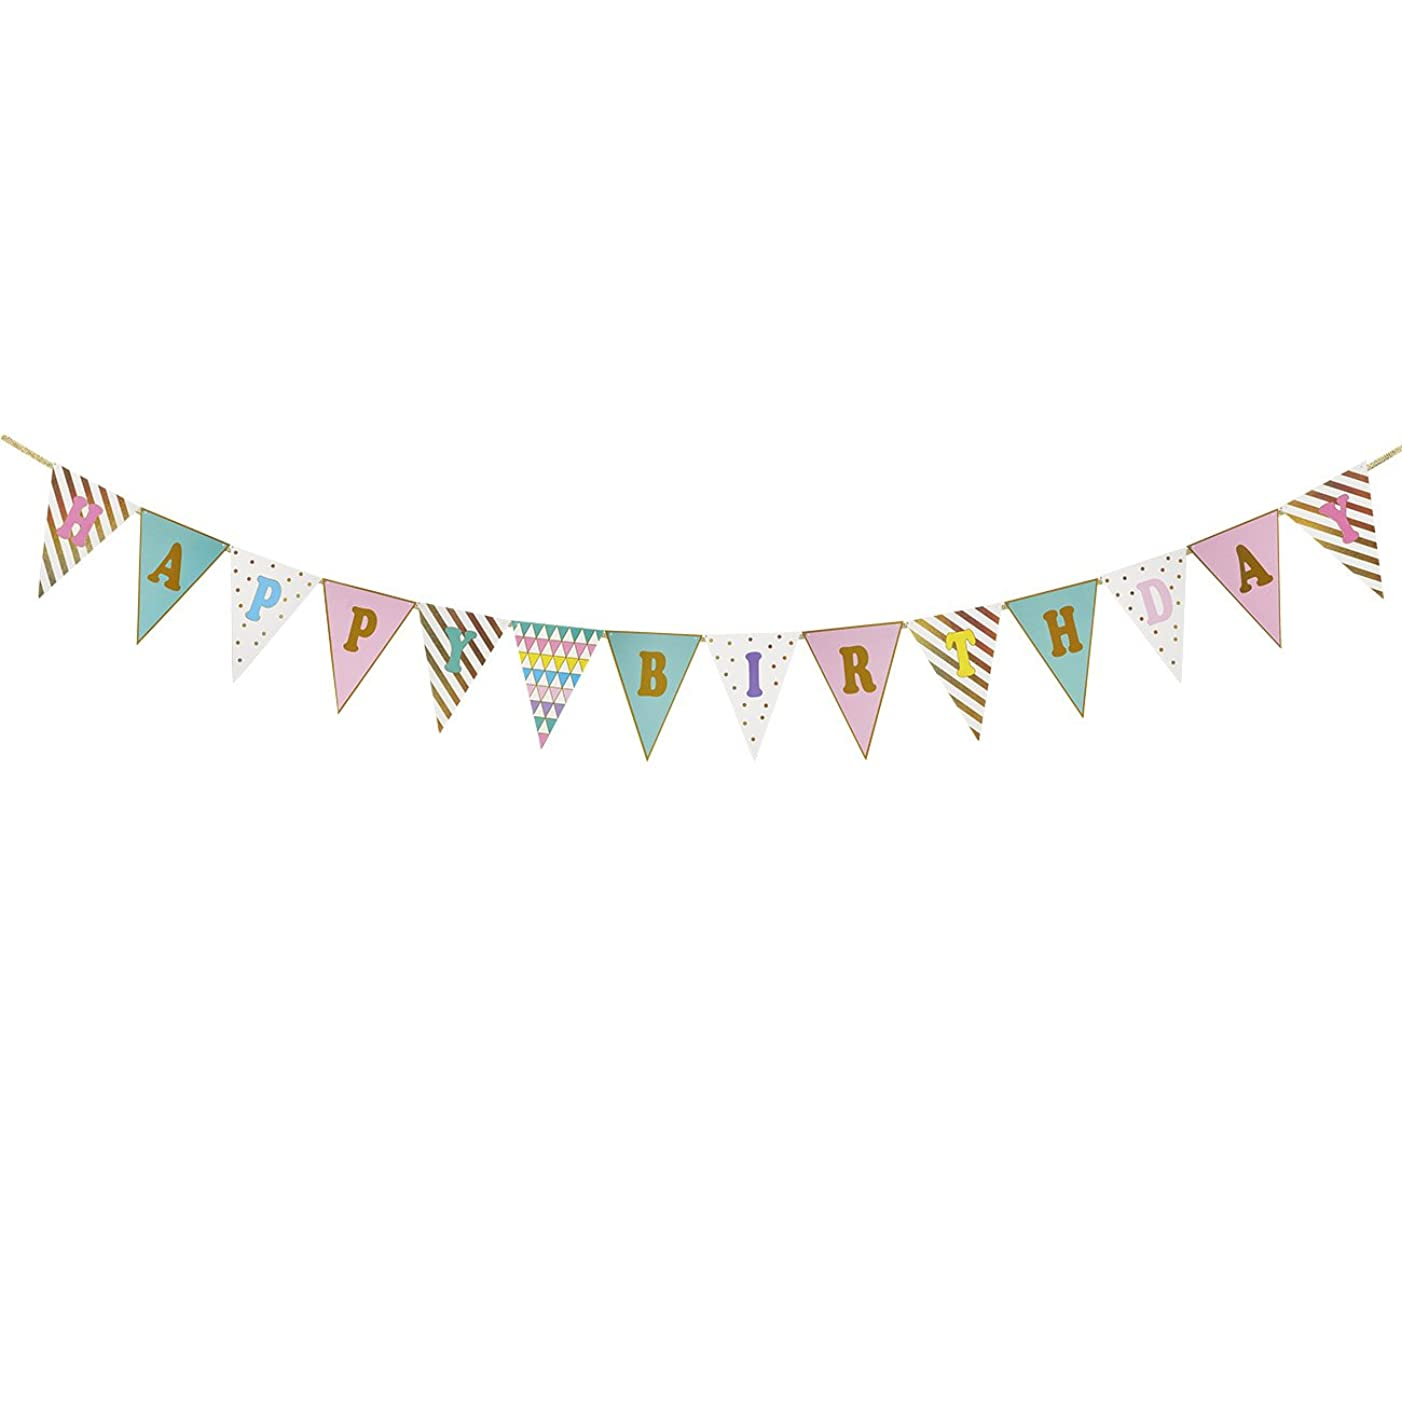 Birthday Party Banner - Pennant Banner Flags, Bunting Flags, Triangle Garland Decorations, Birthday Party Supplies for Kids, Multi Colors and Patterns, 12.6 Feet Long